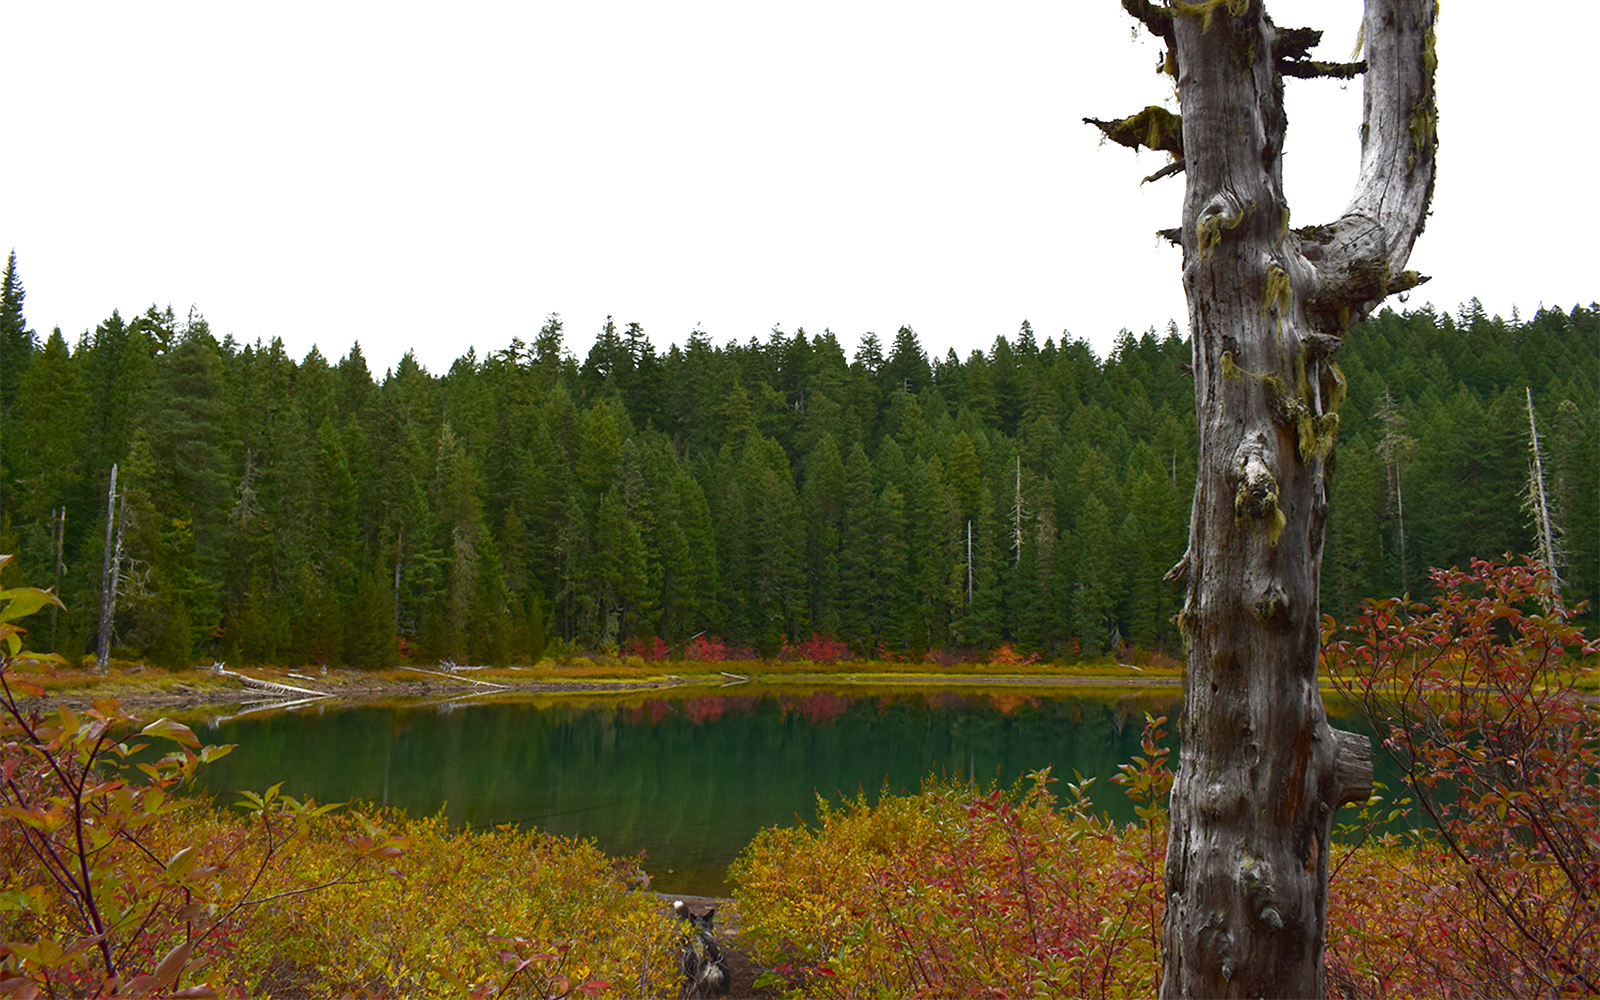 Protect older natural forests in the western Cascades